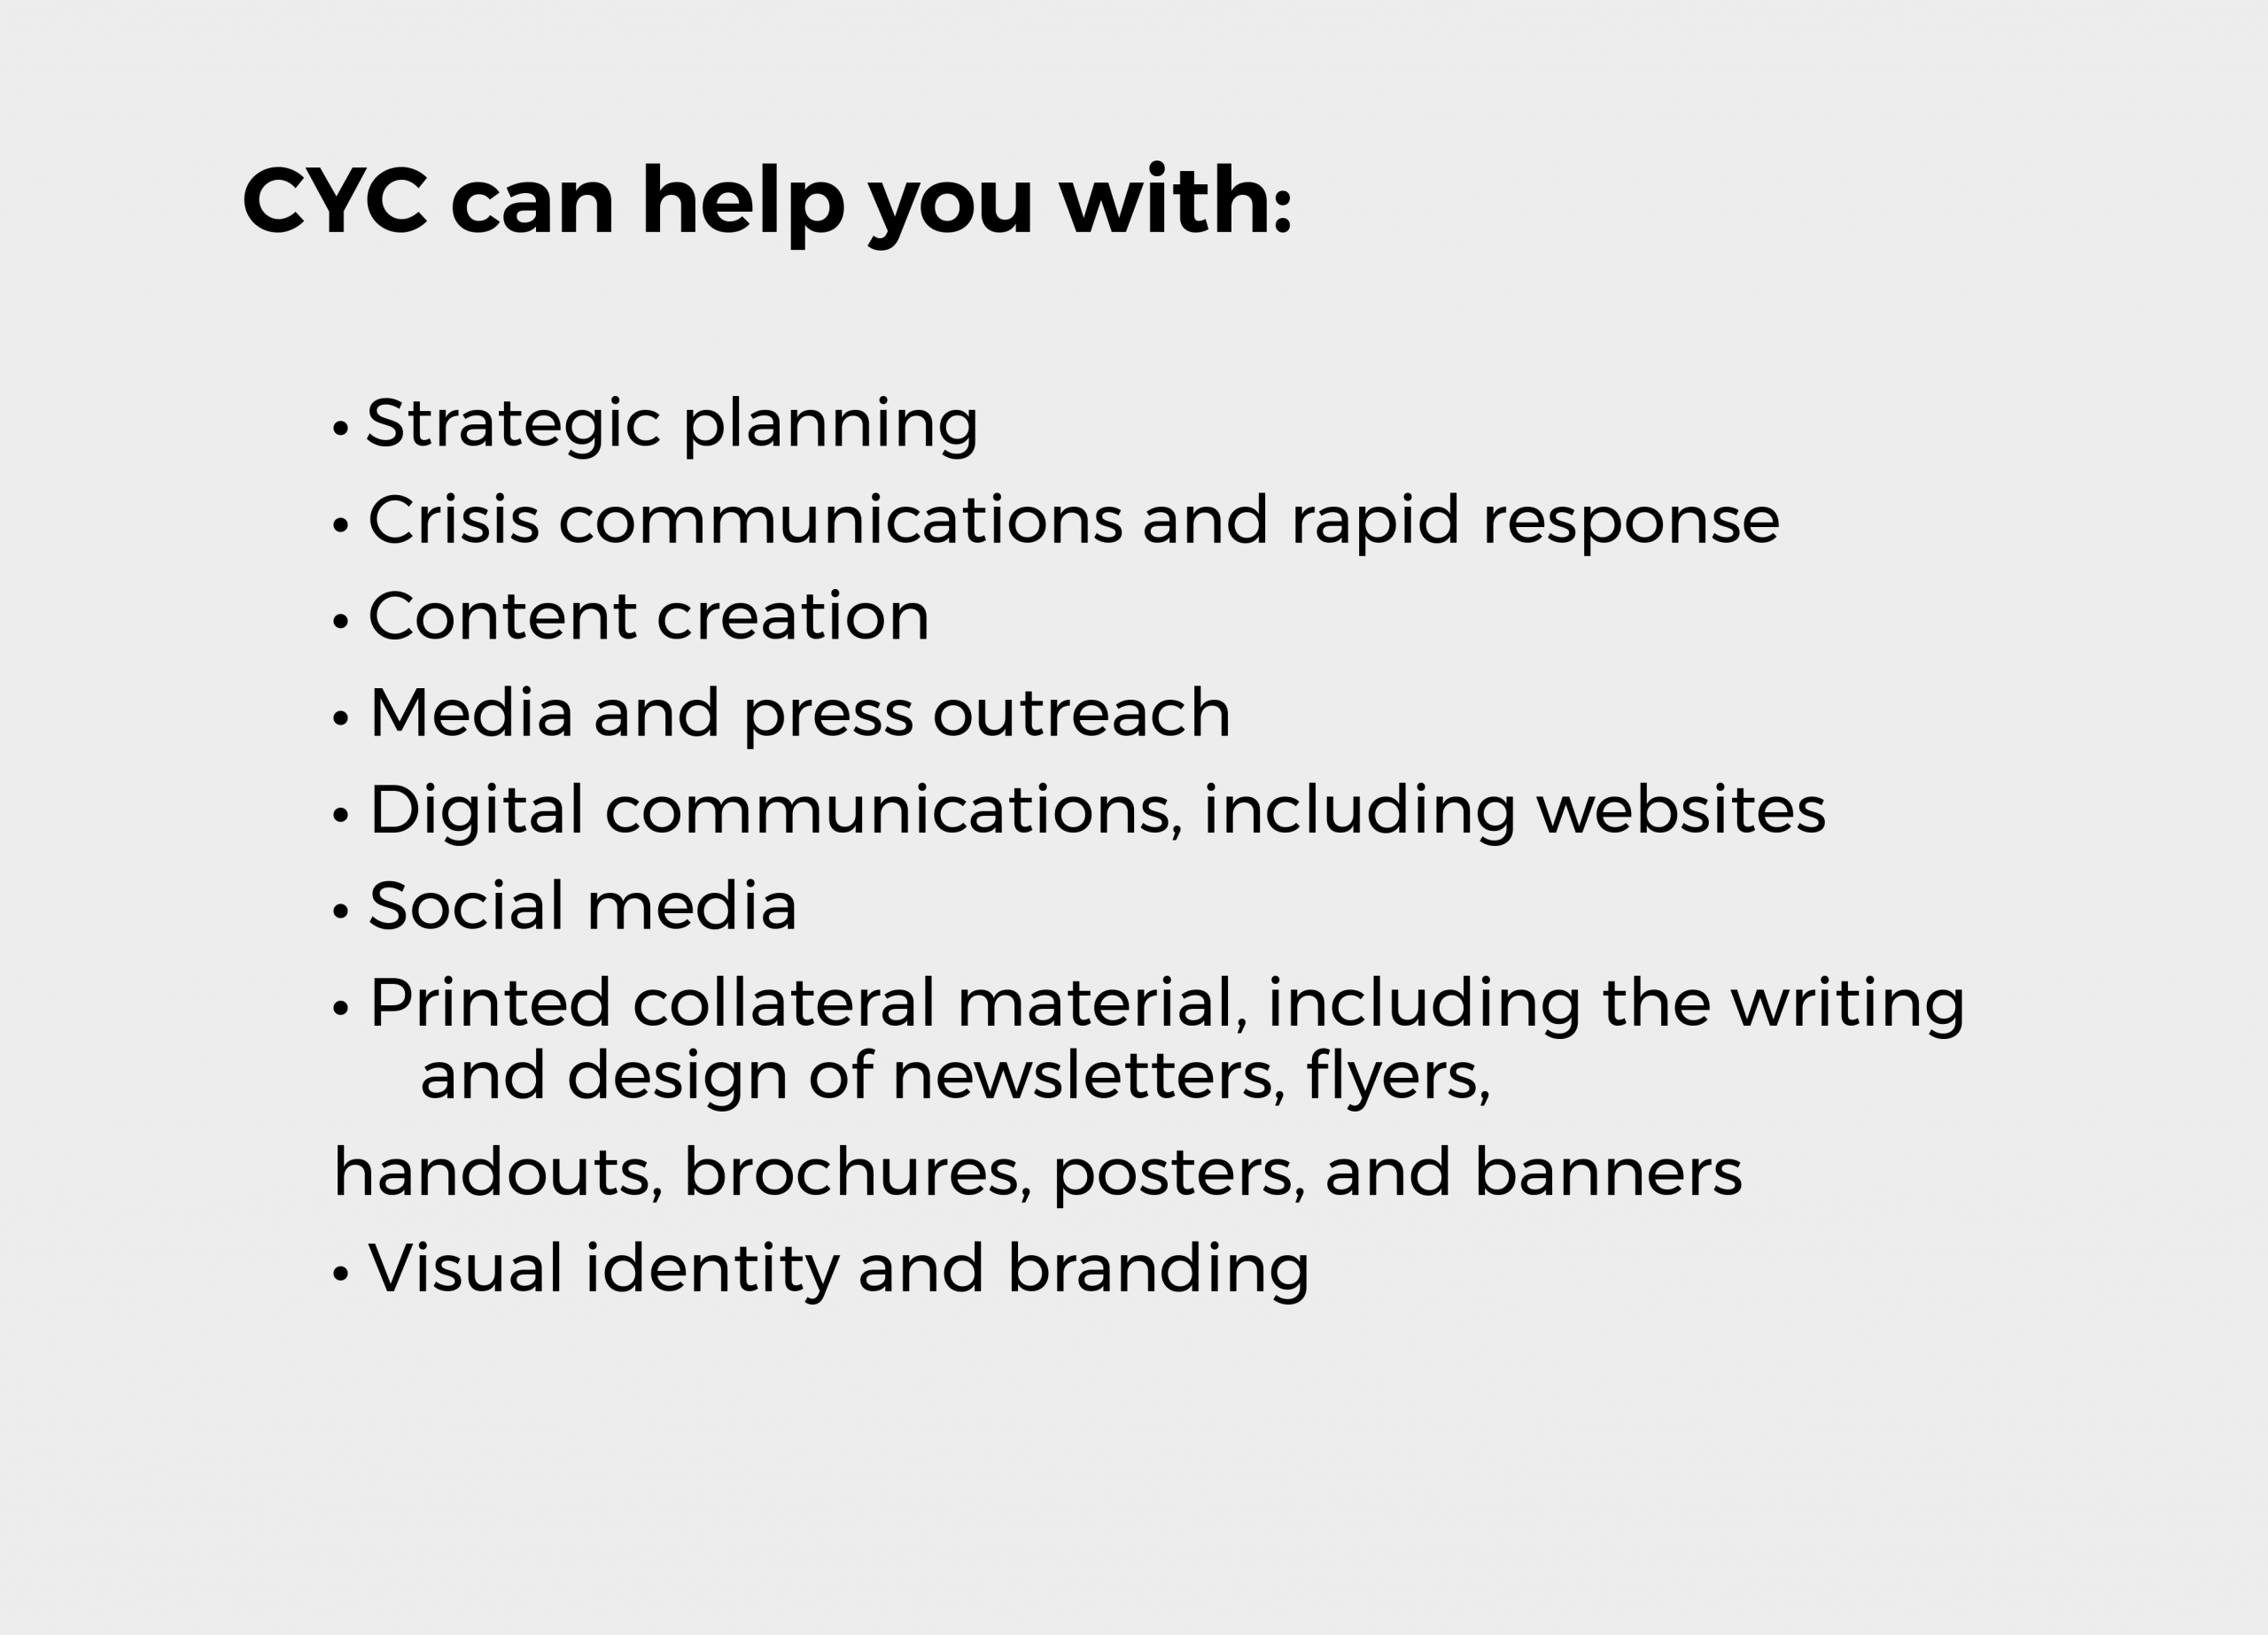 CYC can help you with outline